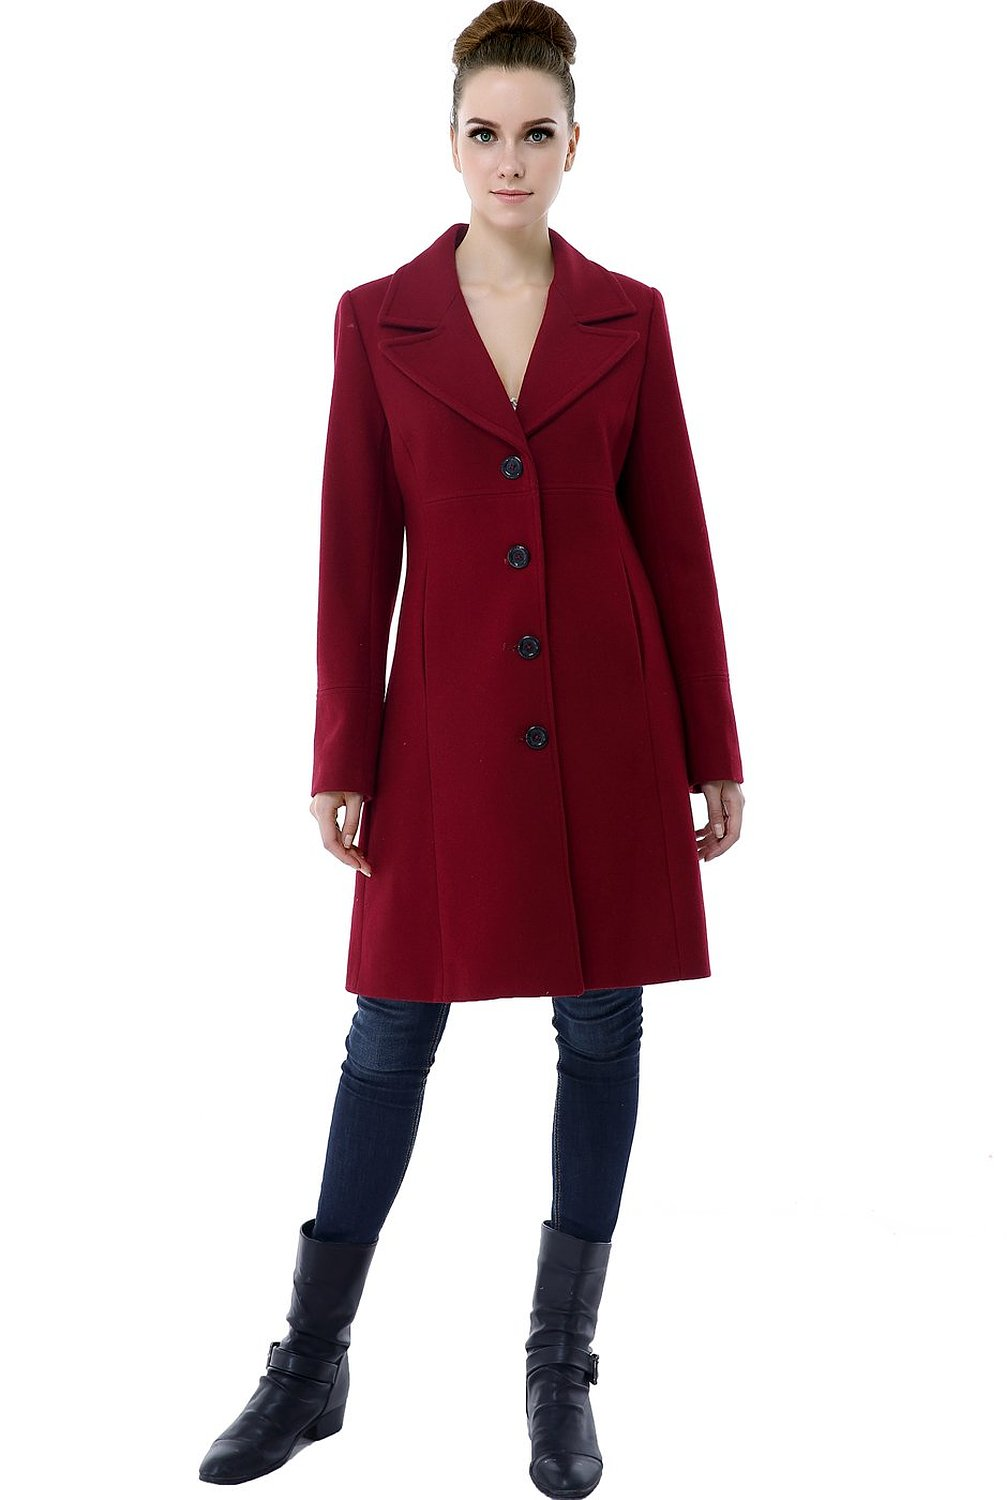 Compare Prices on Wool Melton Coats- Online Shopping/Buy Low Price ...